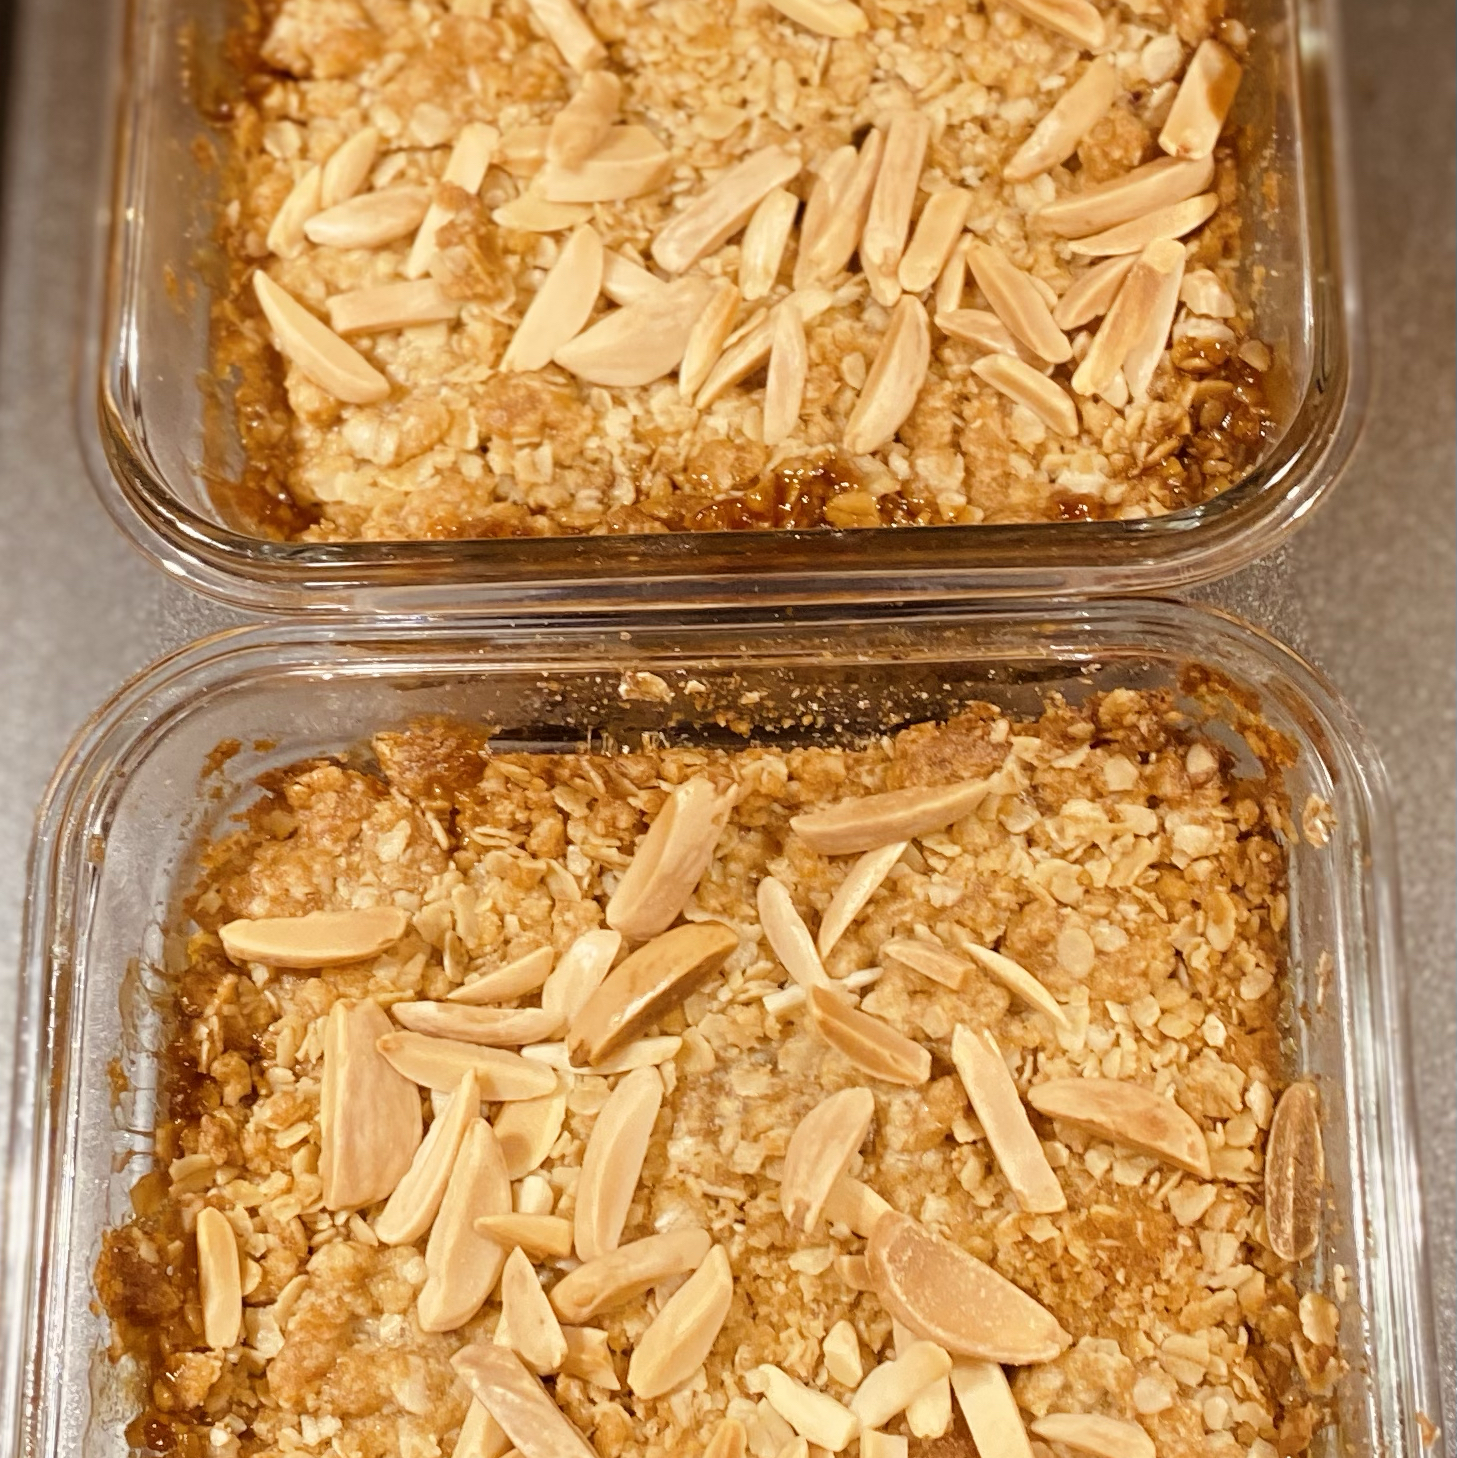 Apple and Pear Crumble Sharon Perry Schmidt